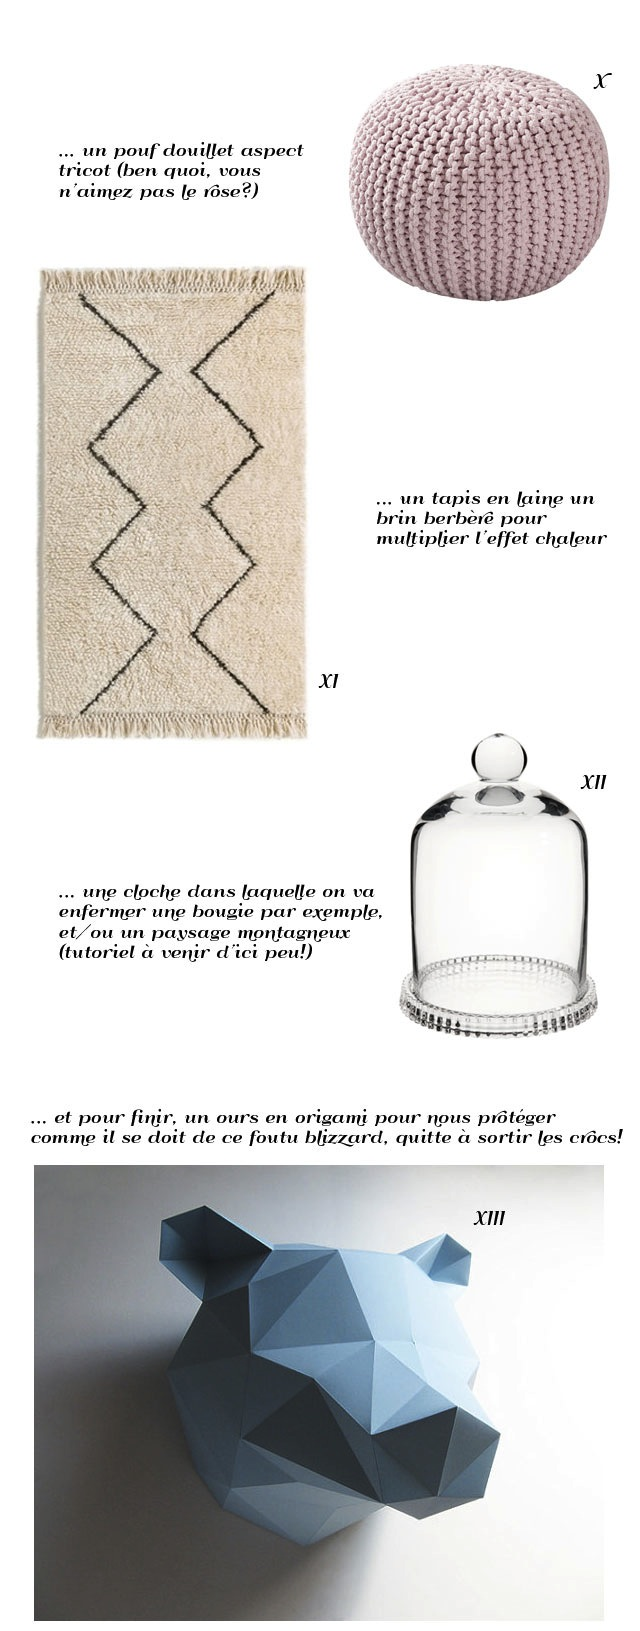 cocooning-deco-hiver-pouf-tapis